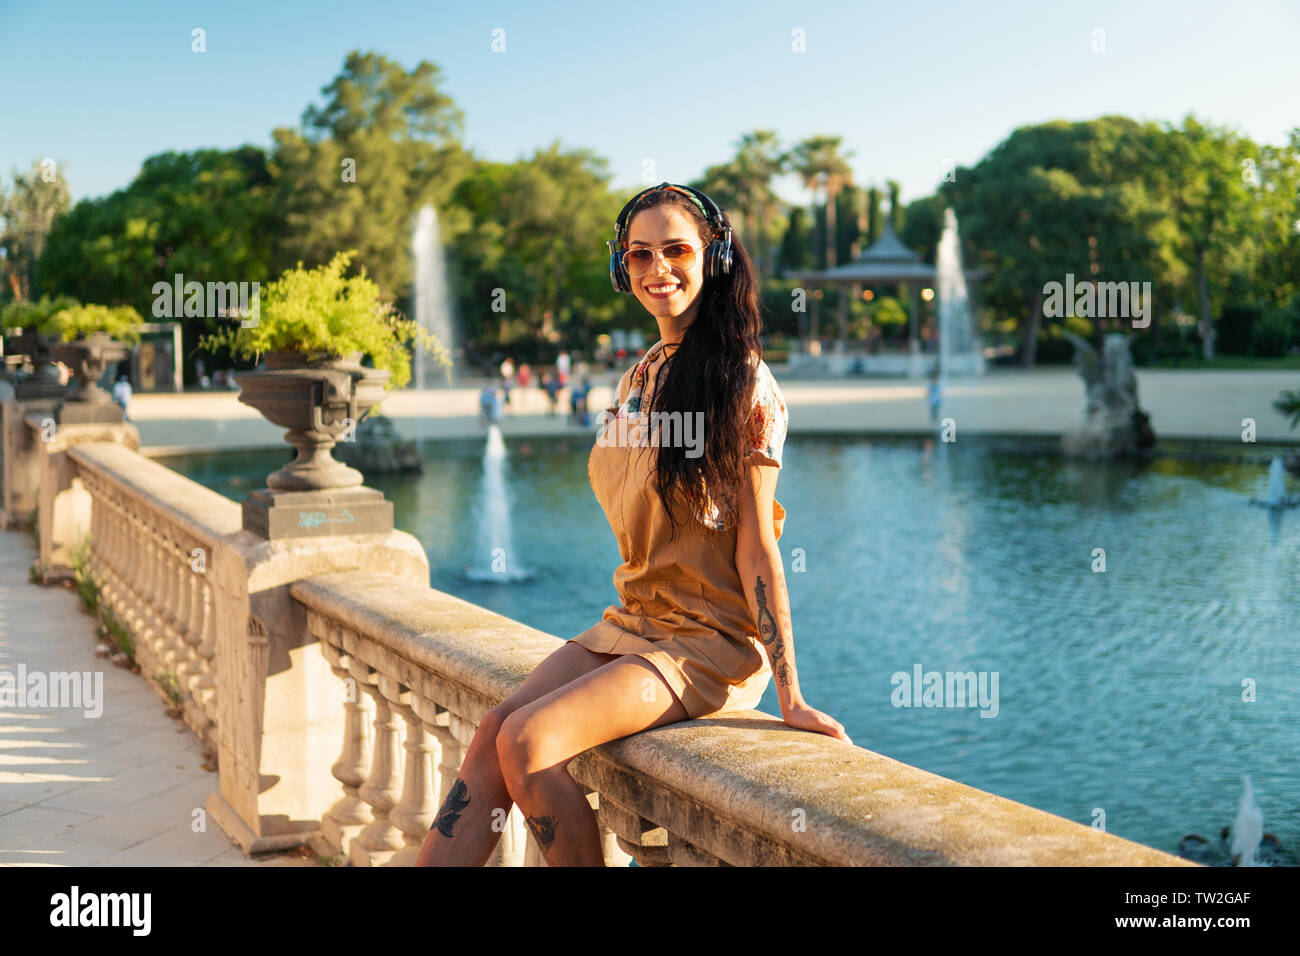 transgender model wearing sunglasses in the green park Stock Photo